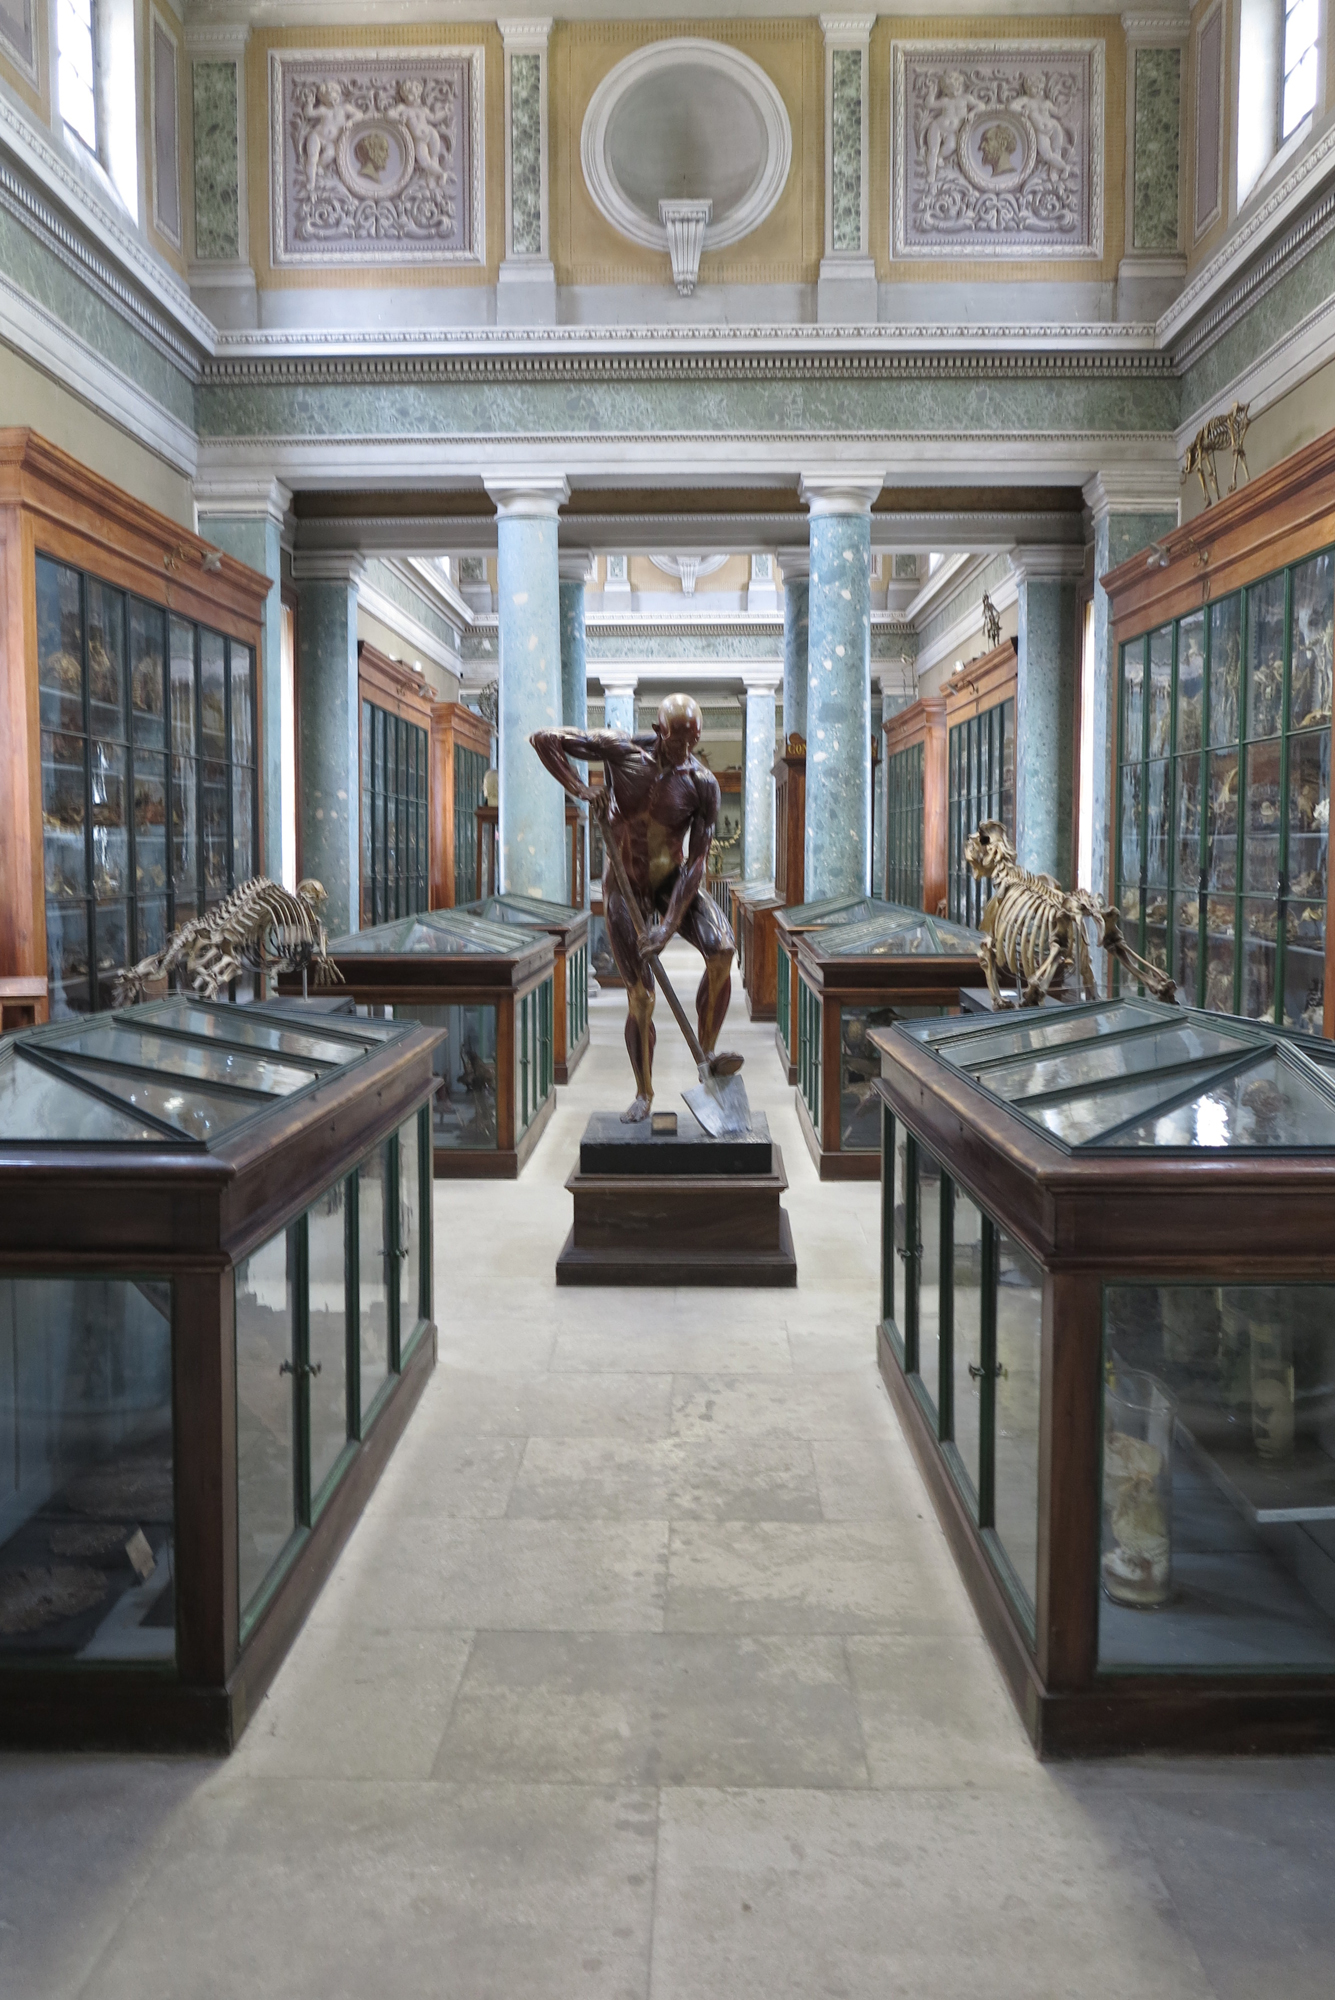 Museum Of Anatomy Of The Faculty Of Medicine In Montpellier France